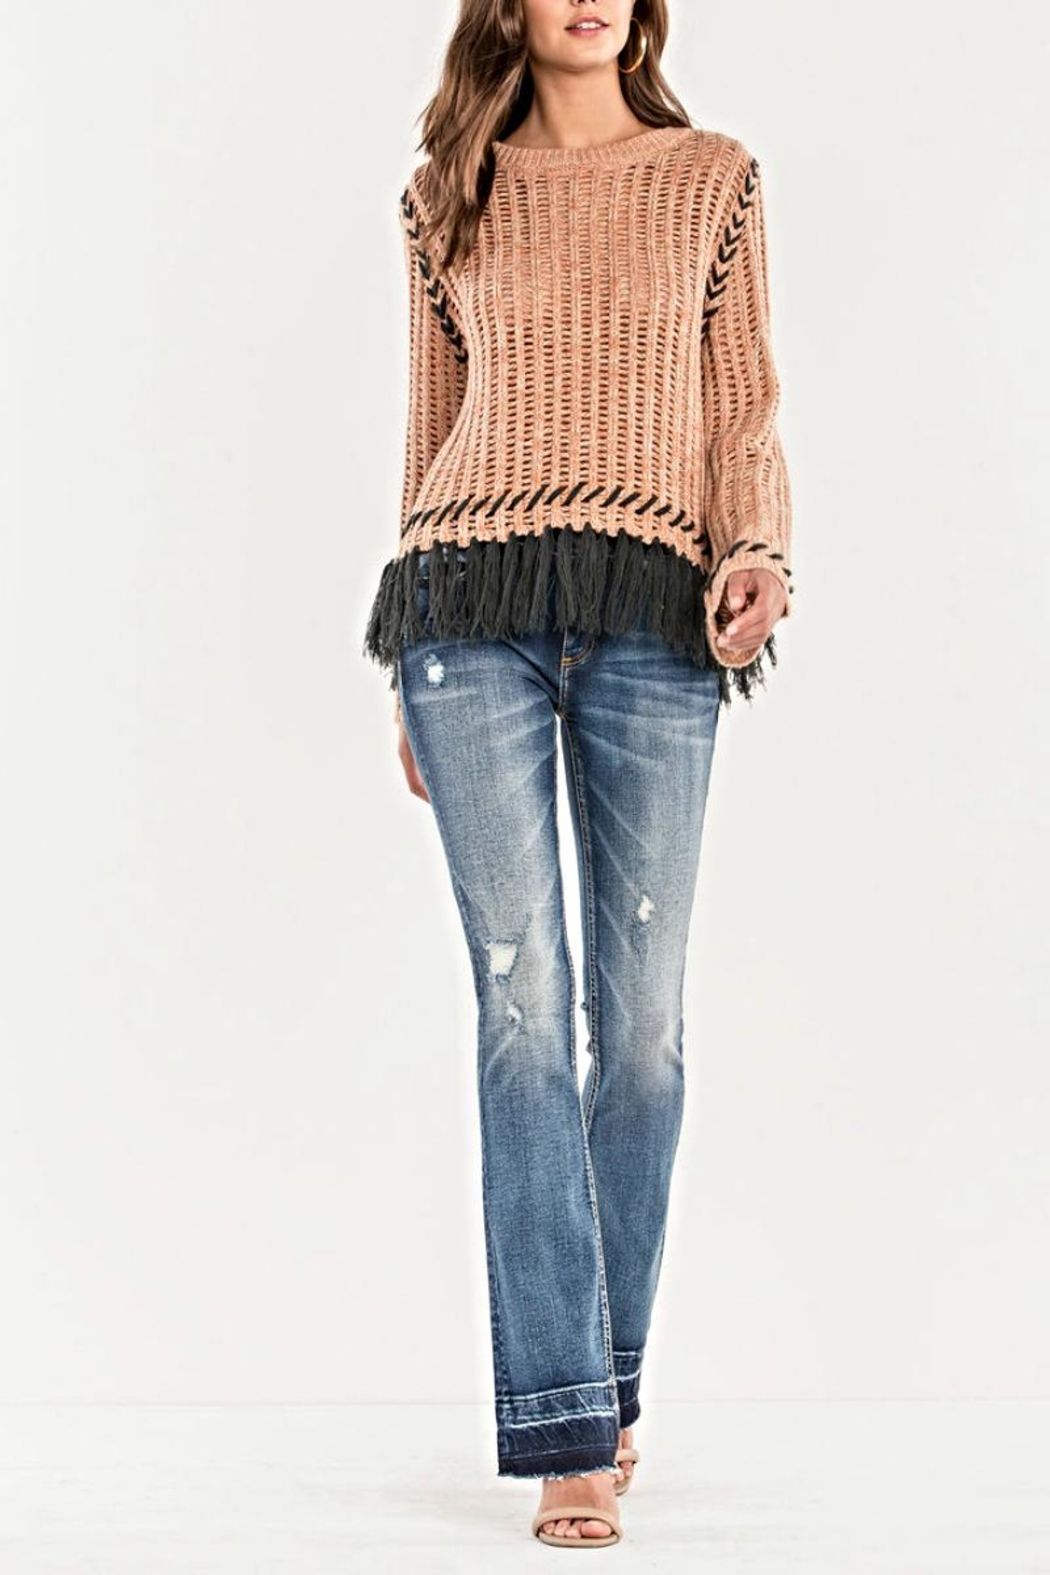 Miss Me Fringe Knit Sweater - Front Cropped Image